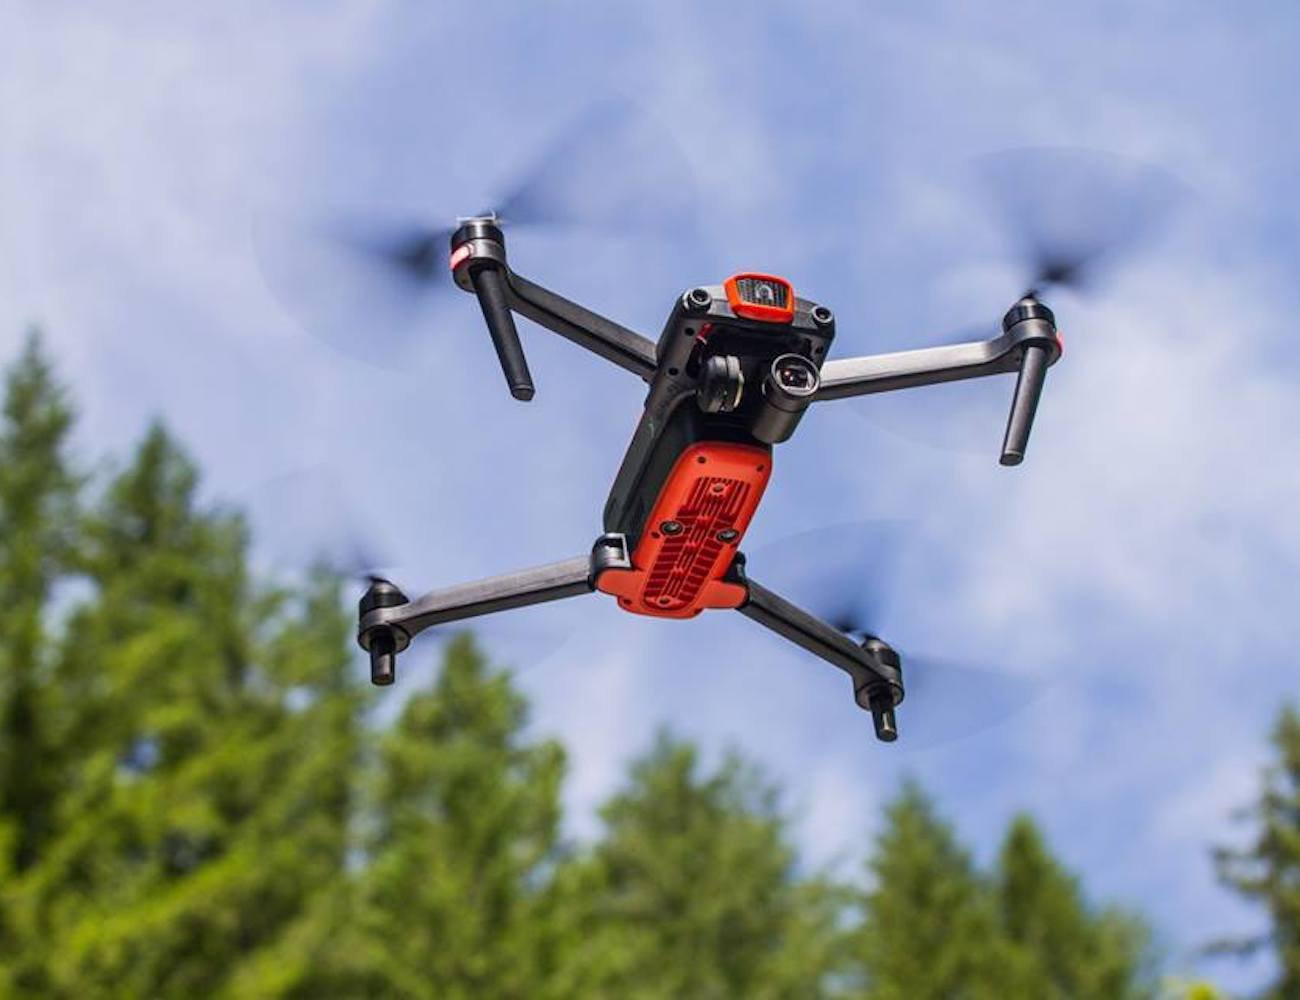 Autel Robotics EVO Compact Foldable Drone offers brilliant images in a small size